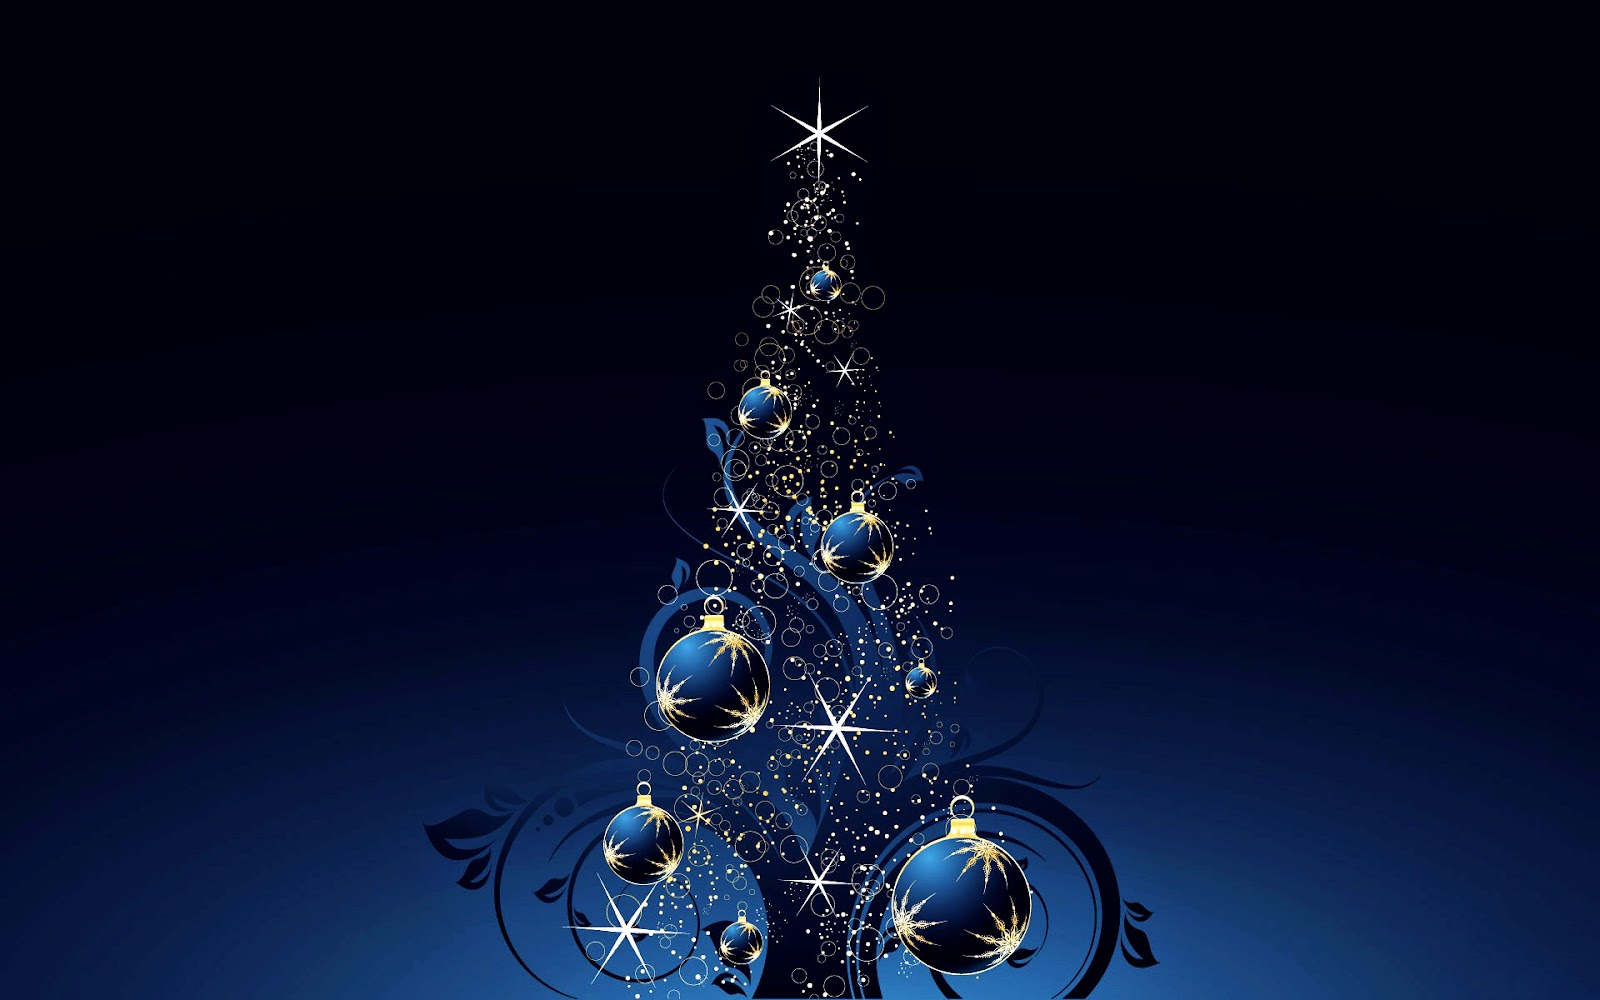 Christmas tree abstract design images | PIXHOME